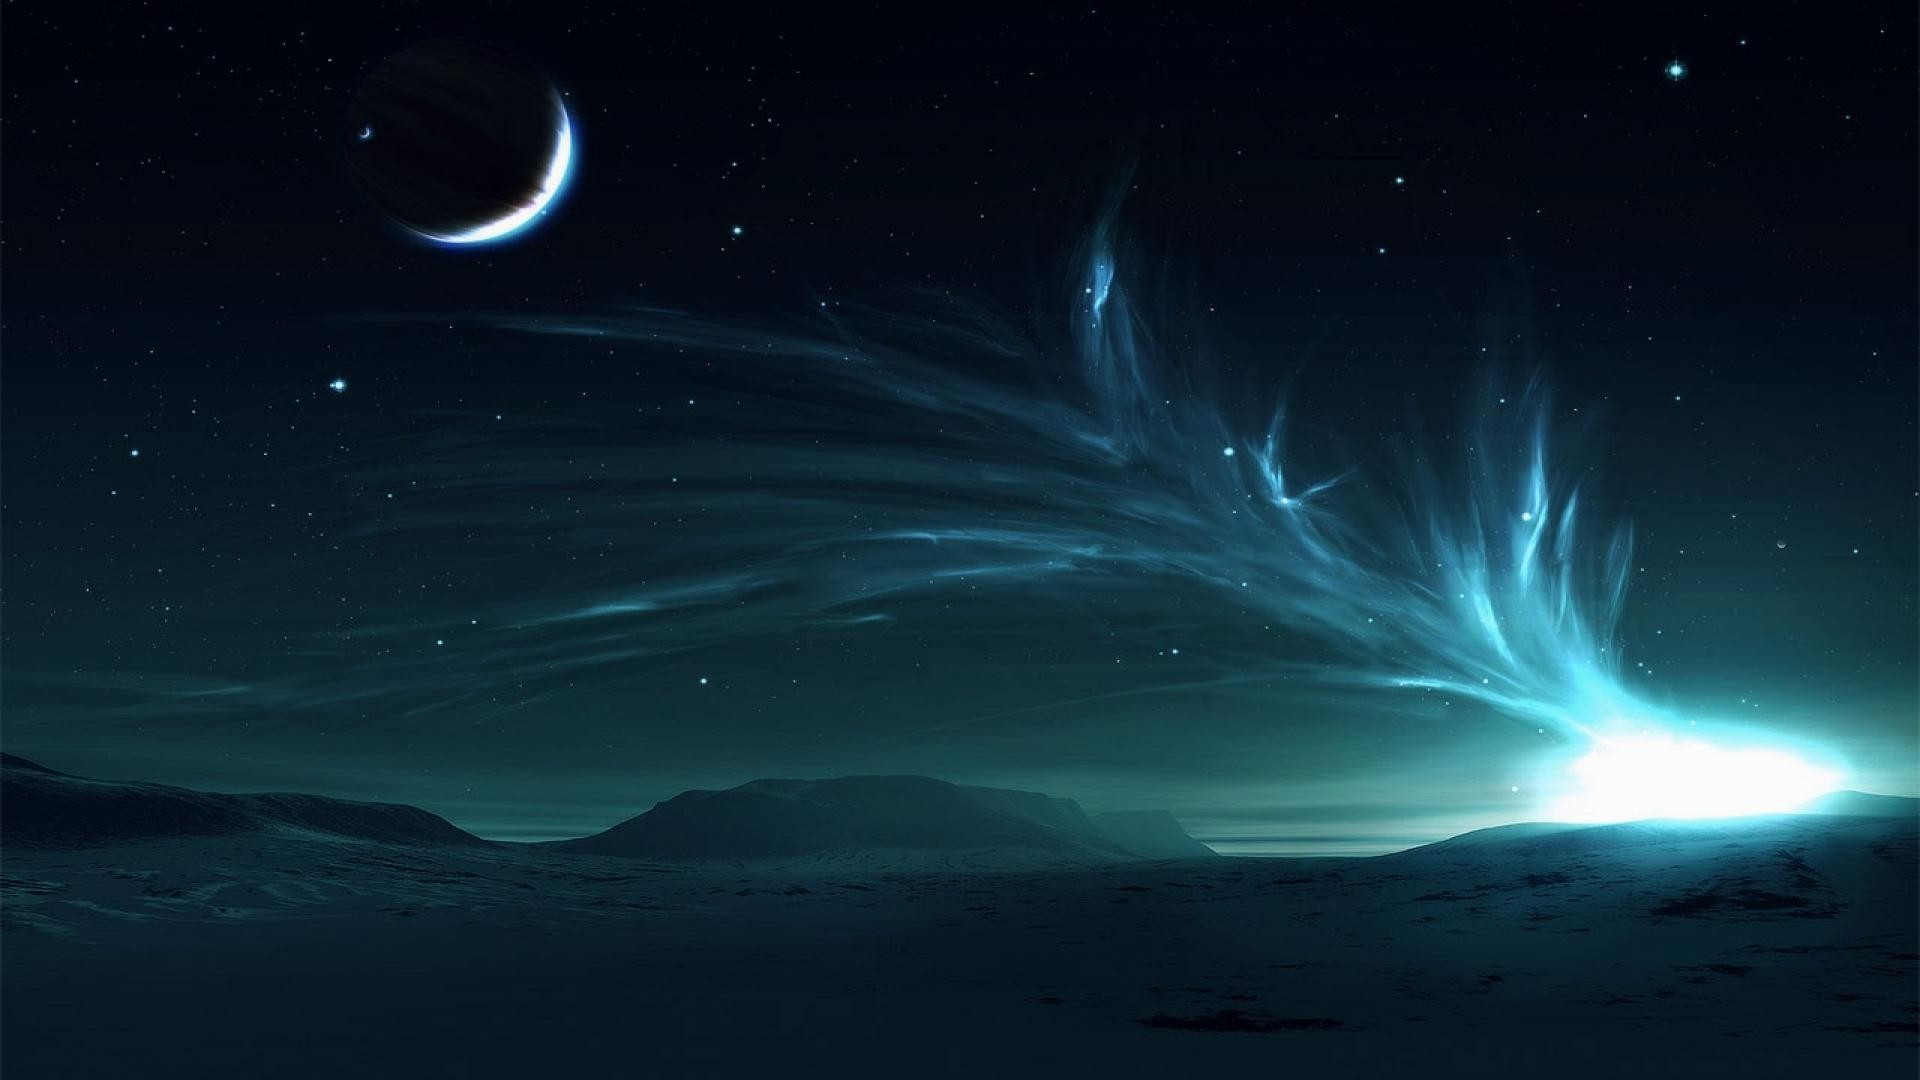 wallpaper.wiki-Abstract-Outer-Space-Wallpaper-PIC-WPD0014203